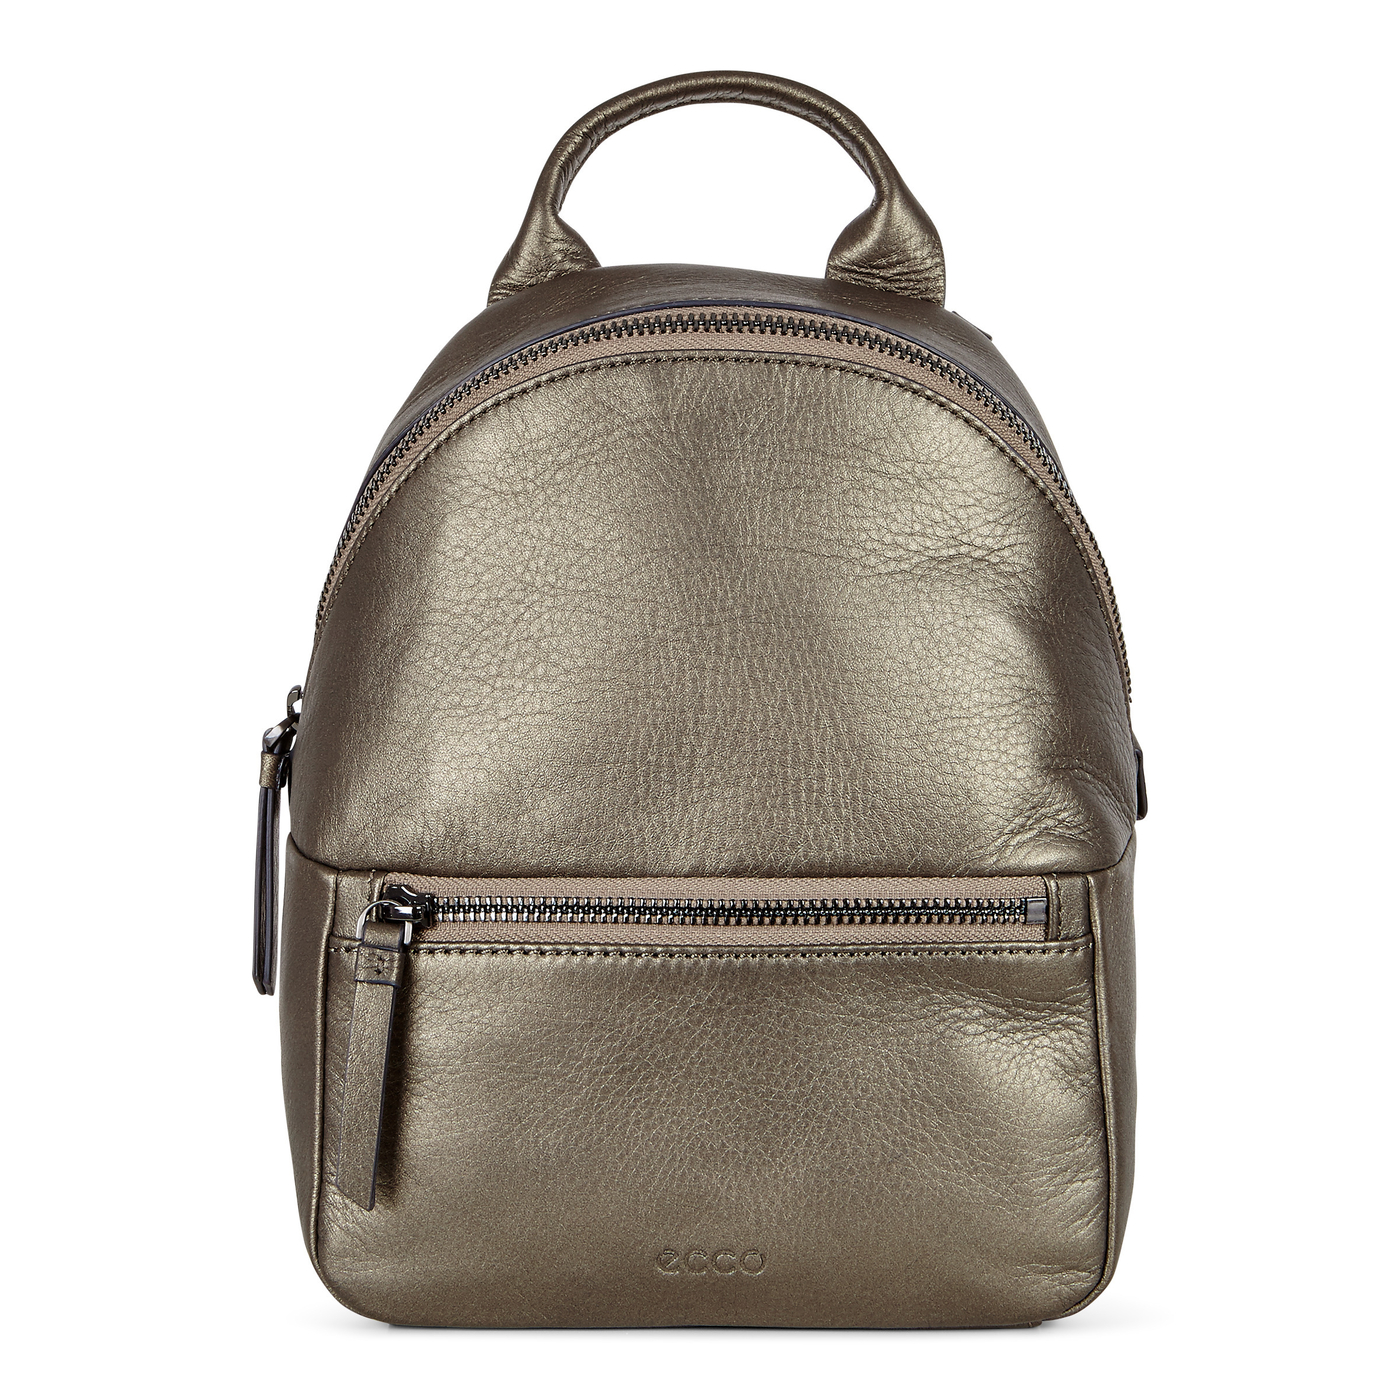 ECCO SP3 Small Backpack